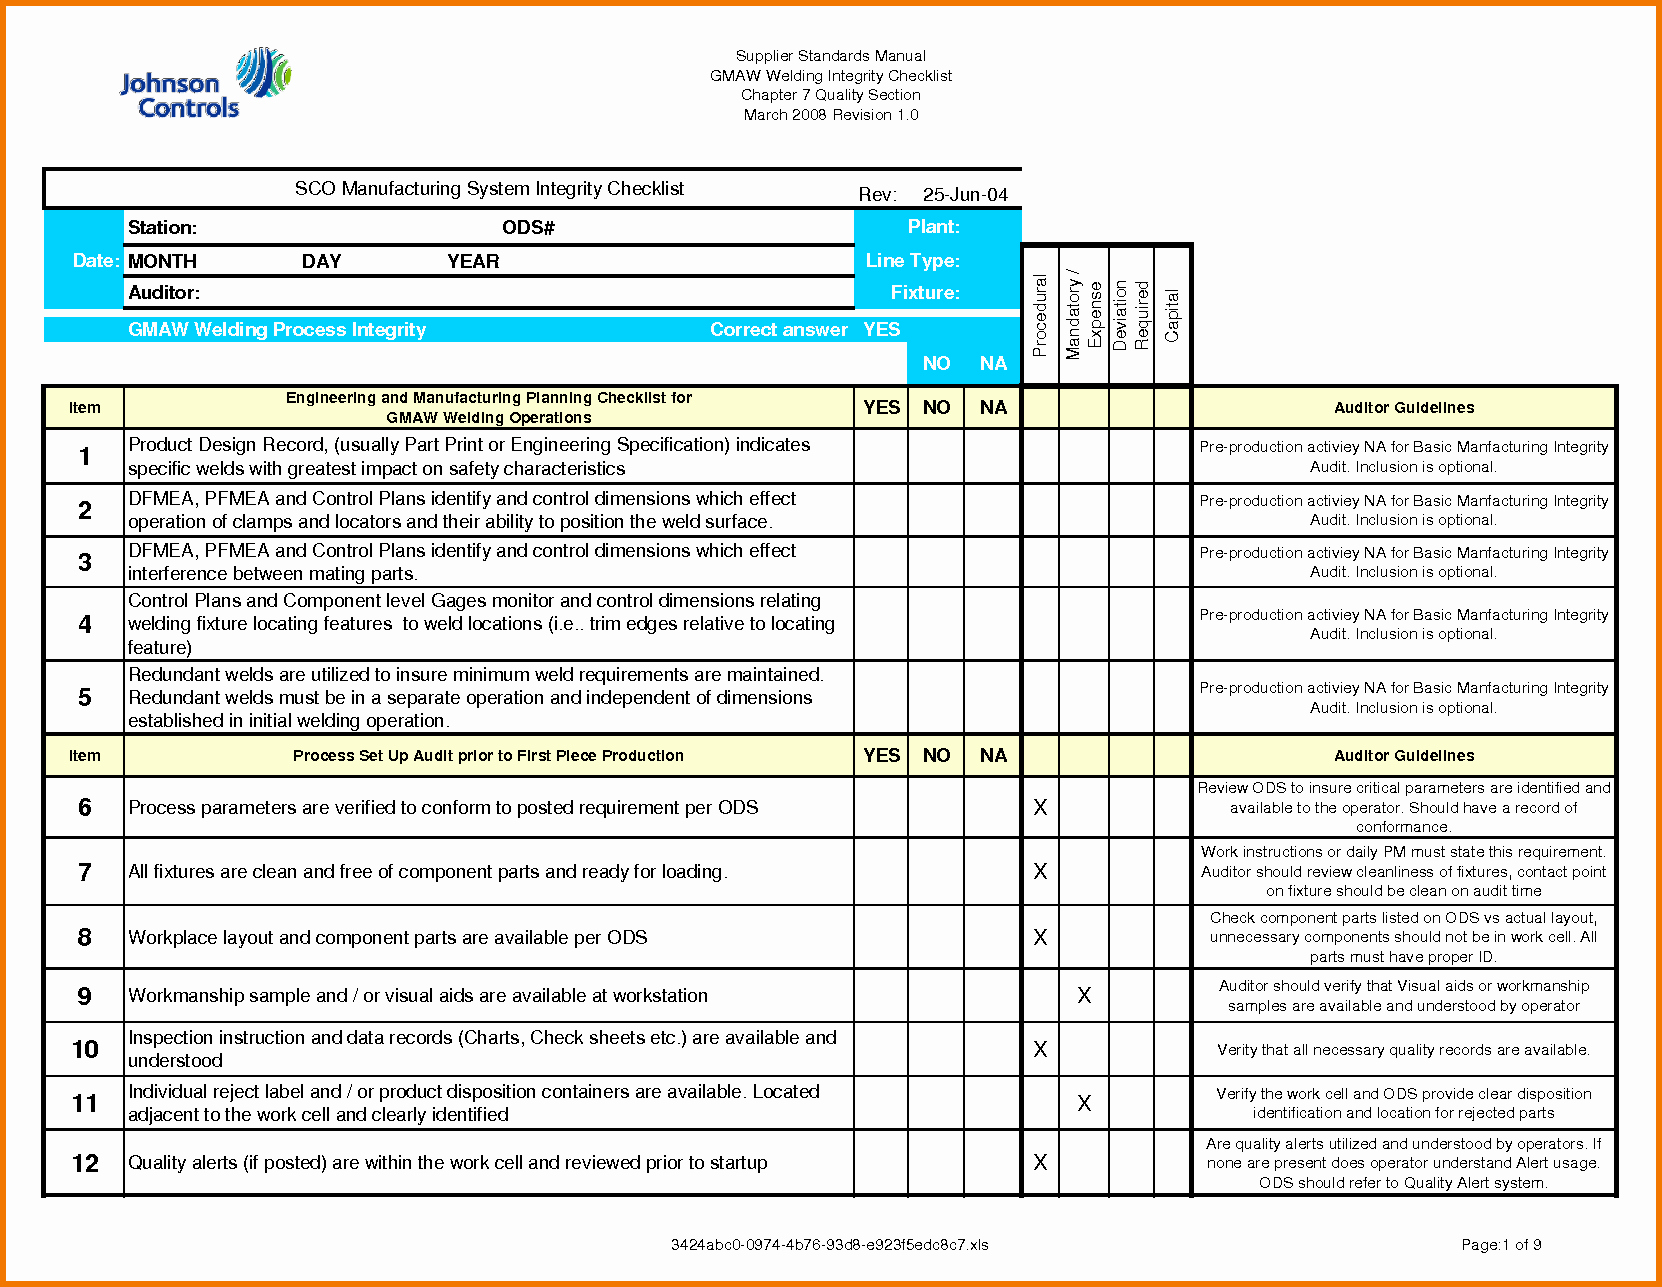 Internal Audit Checklist Template Excel Luxury Audit Checklist Template Excel to Pin On